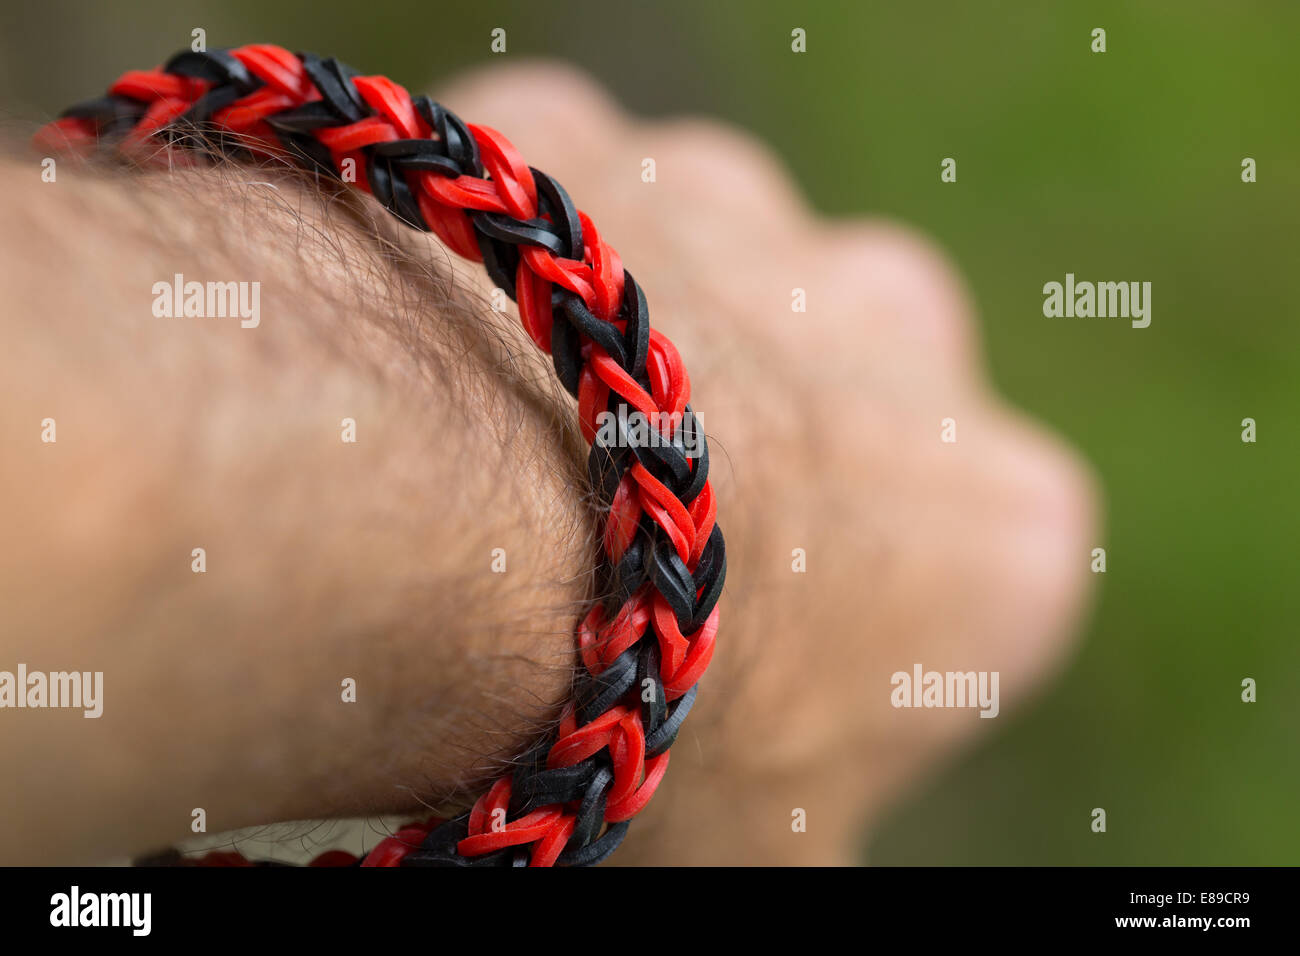 A red and black bracelet made from loom bands on a man's wrist. Model Released. - Stock Image